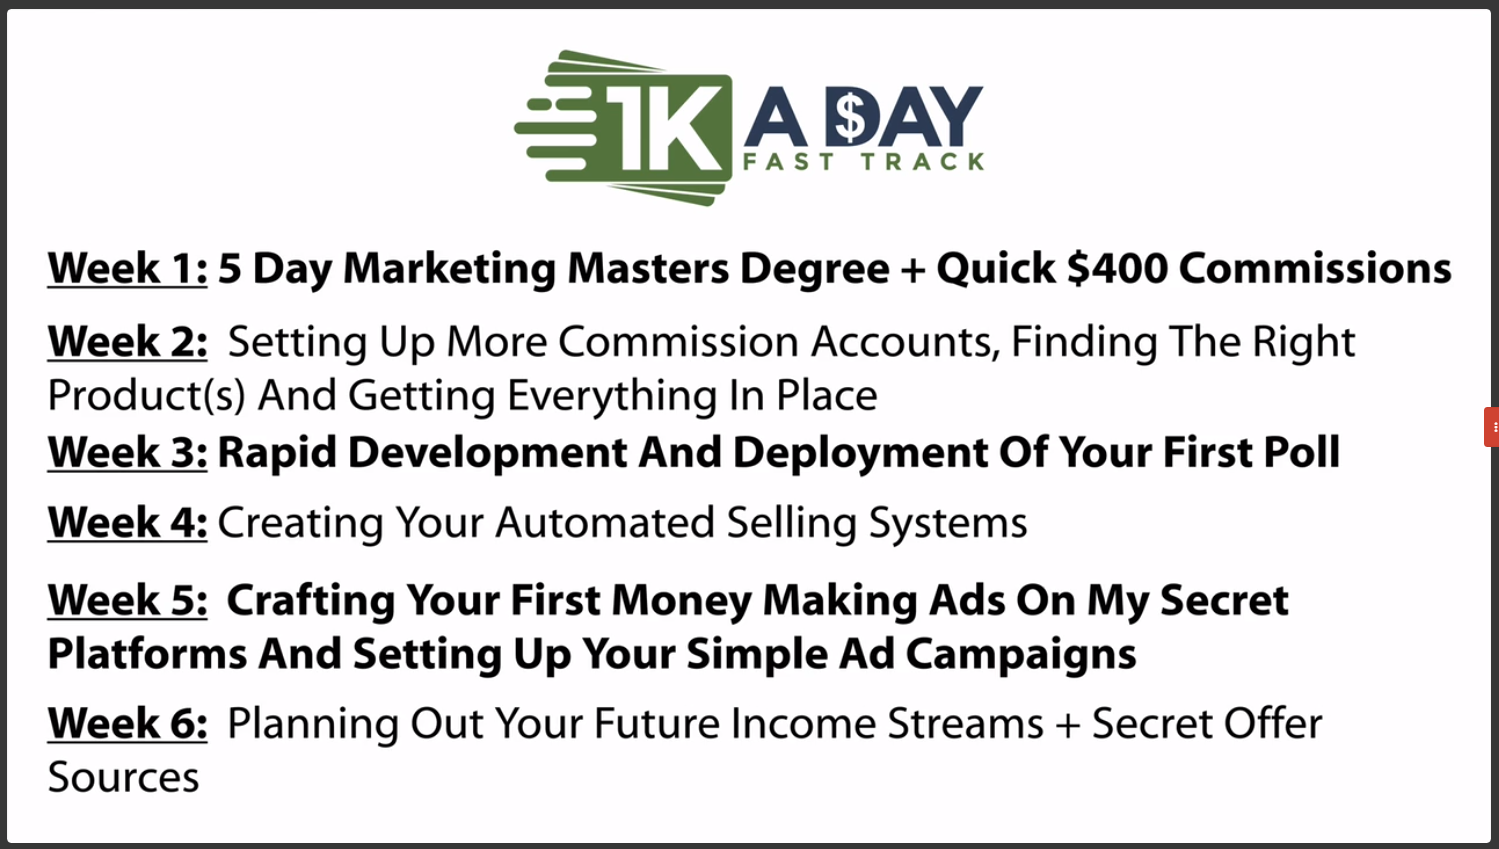 Cheapest 1k A Day Fast Track Deal March 2020